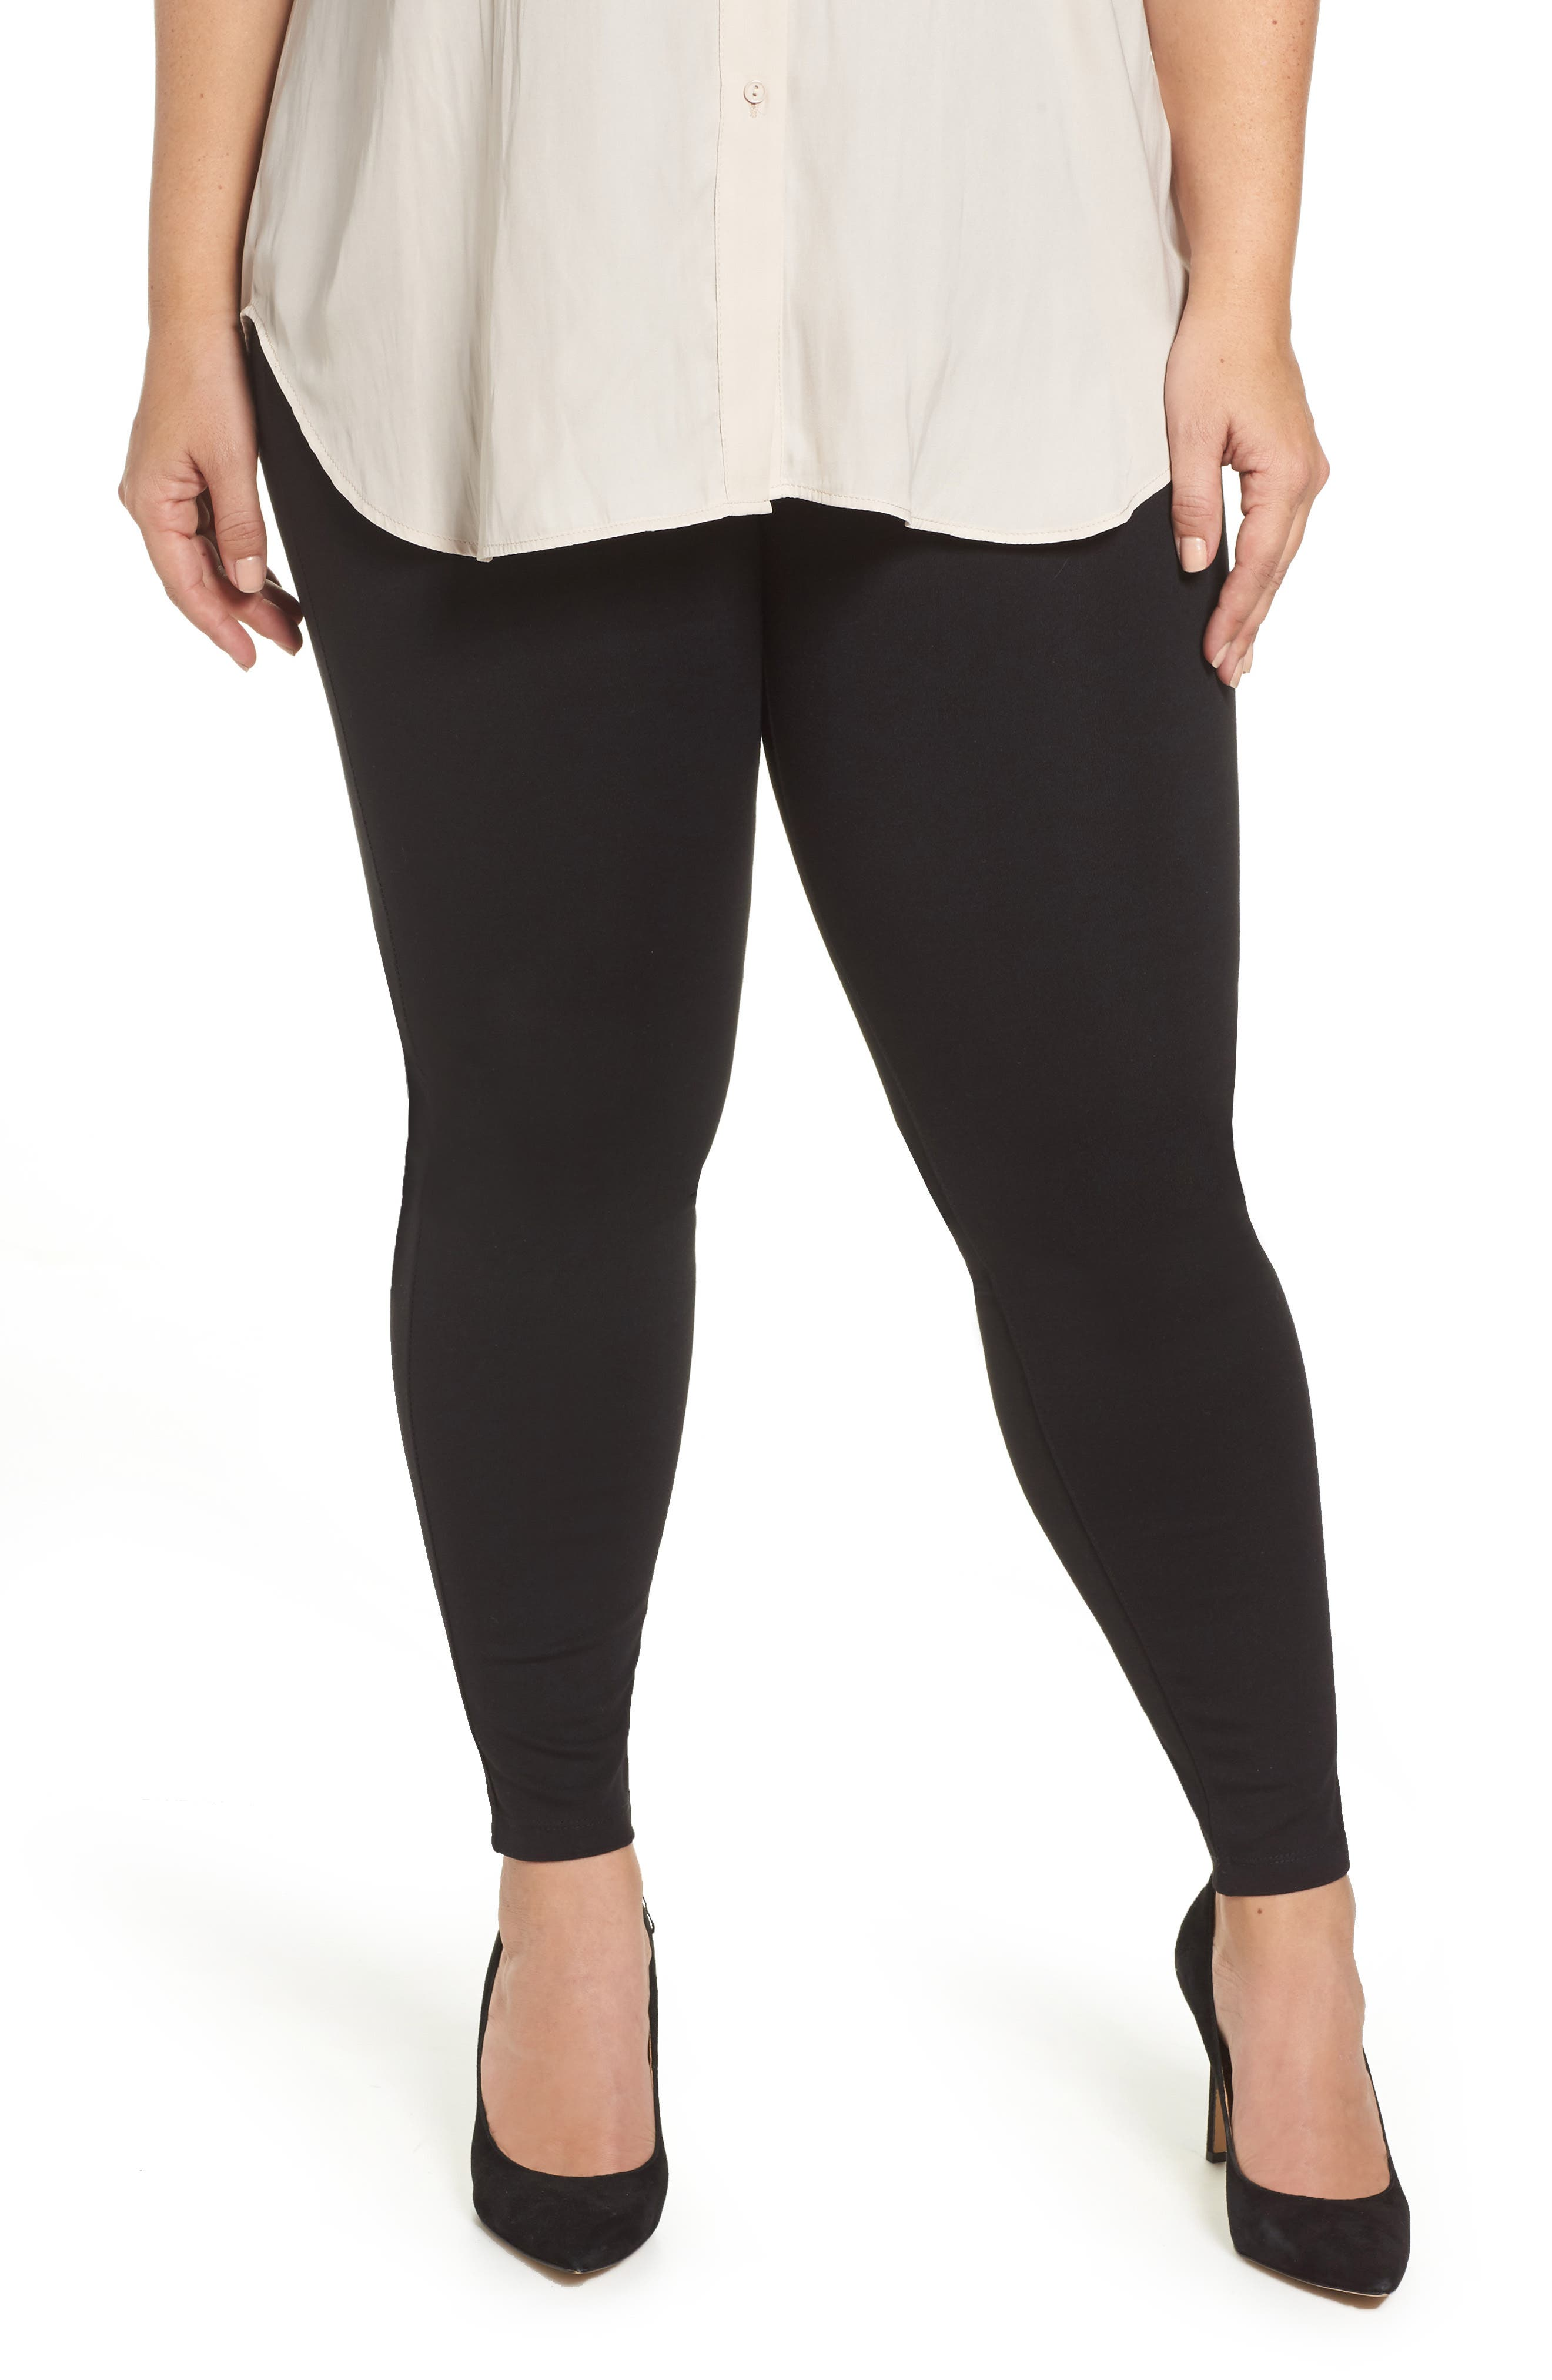 Alternate Image 1 Selected - Liverpool Jeans Company Ponte Knit Leggings (Plus Size)